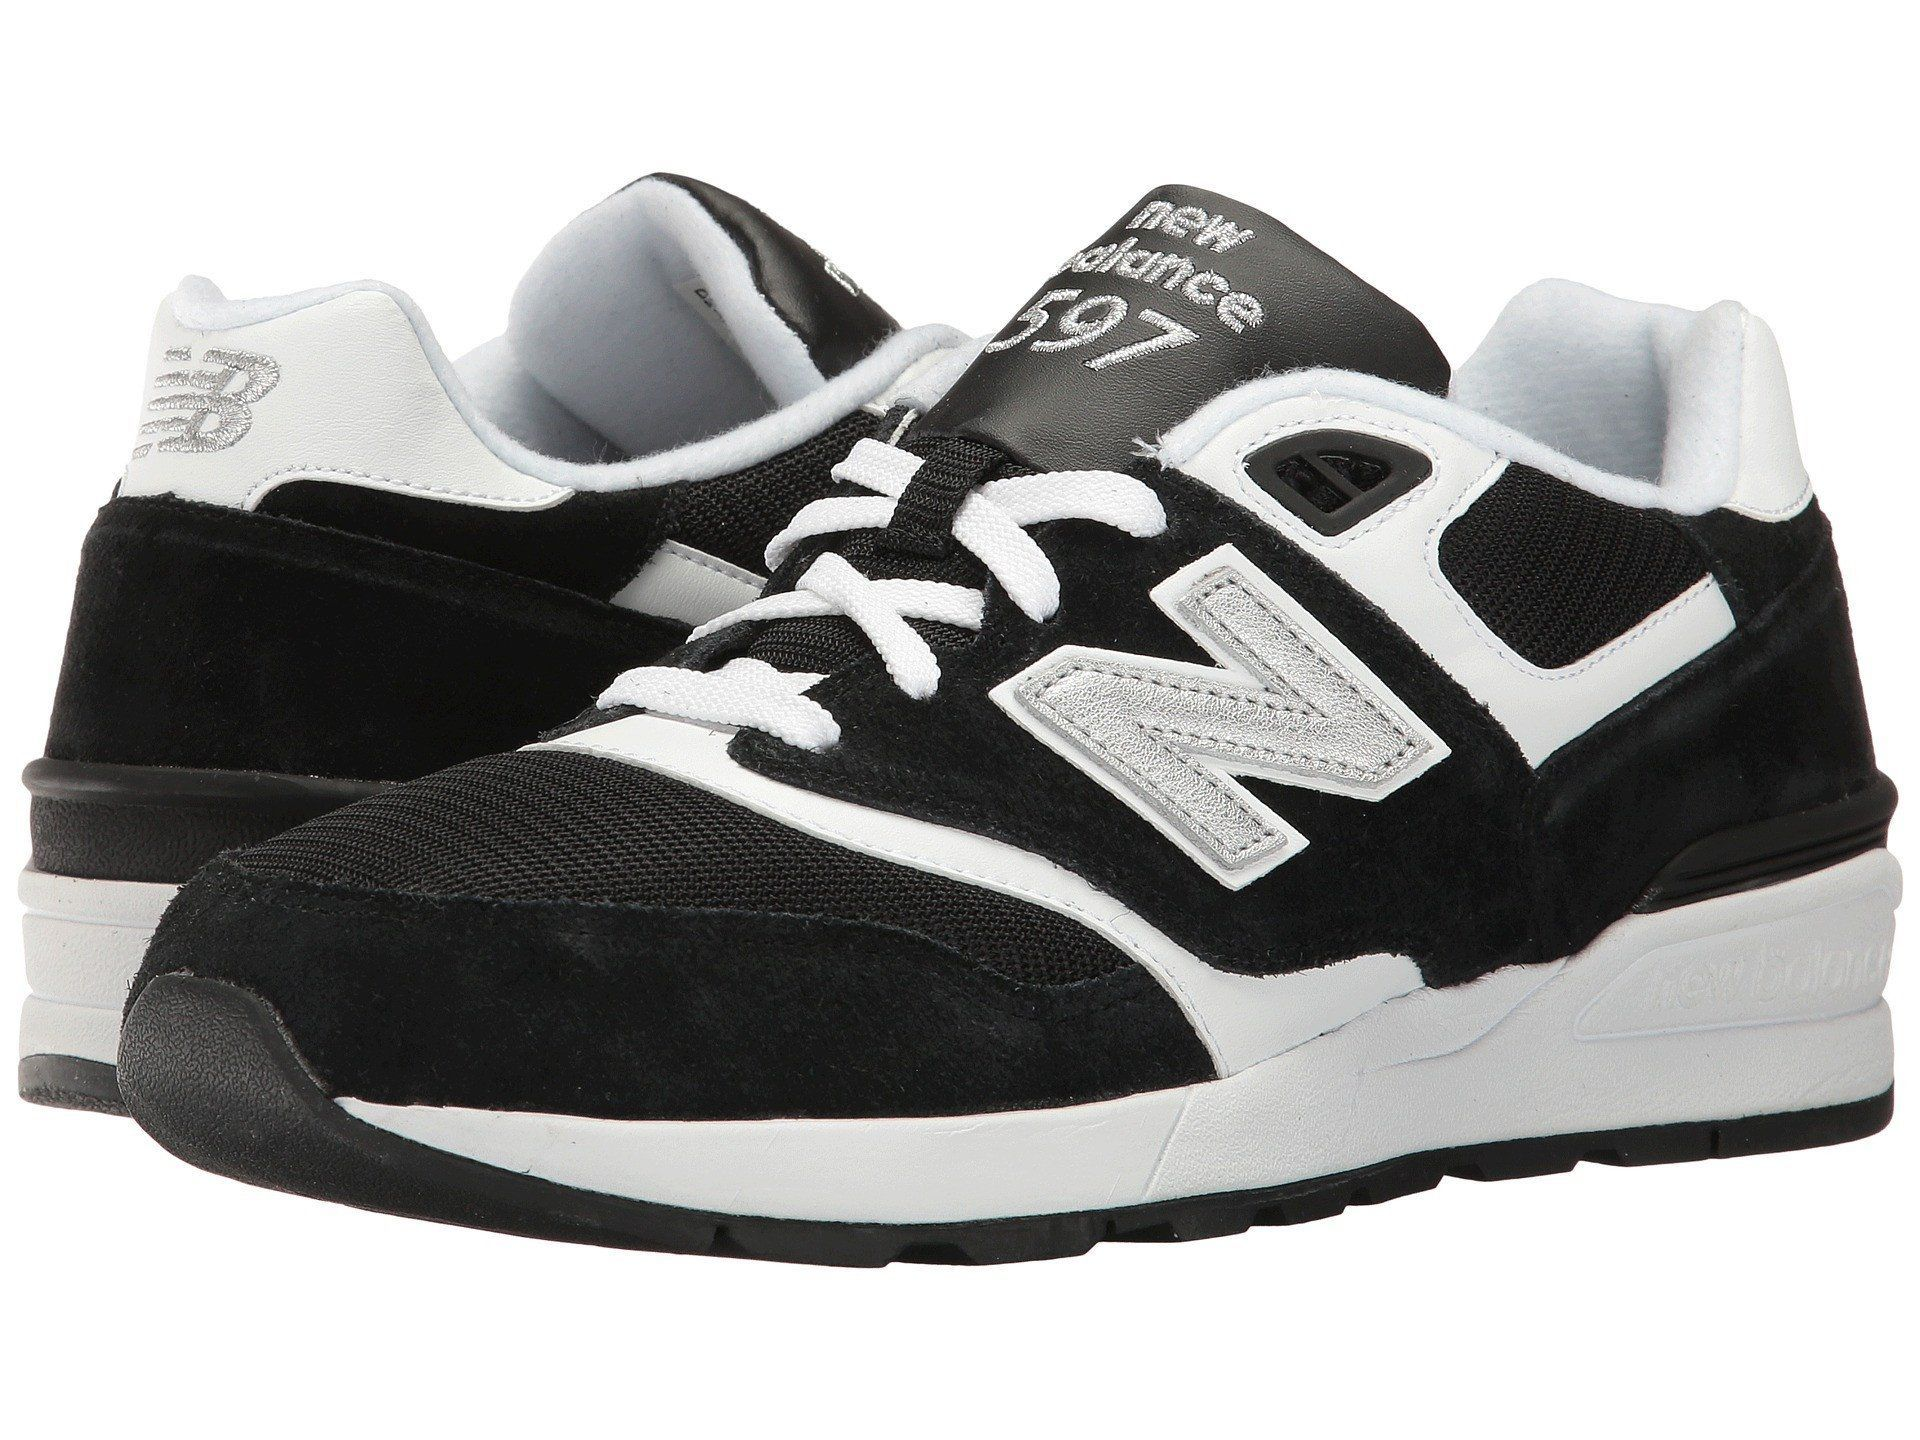 0fbe4be1b45be NEW BALANCE 597 Men | Black / White (ML597RSD) | Fresh kicks | Shoes ...